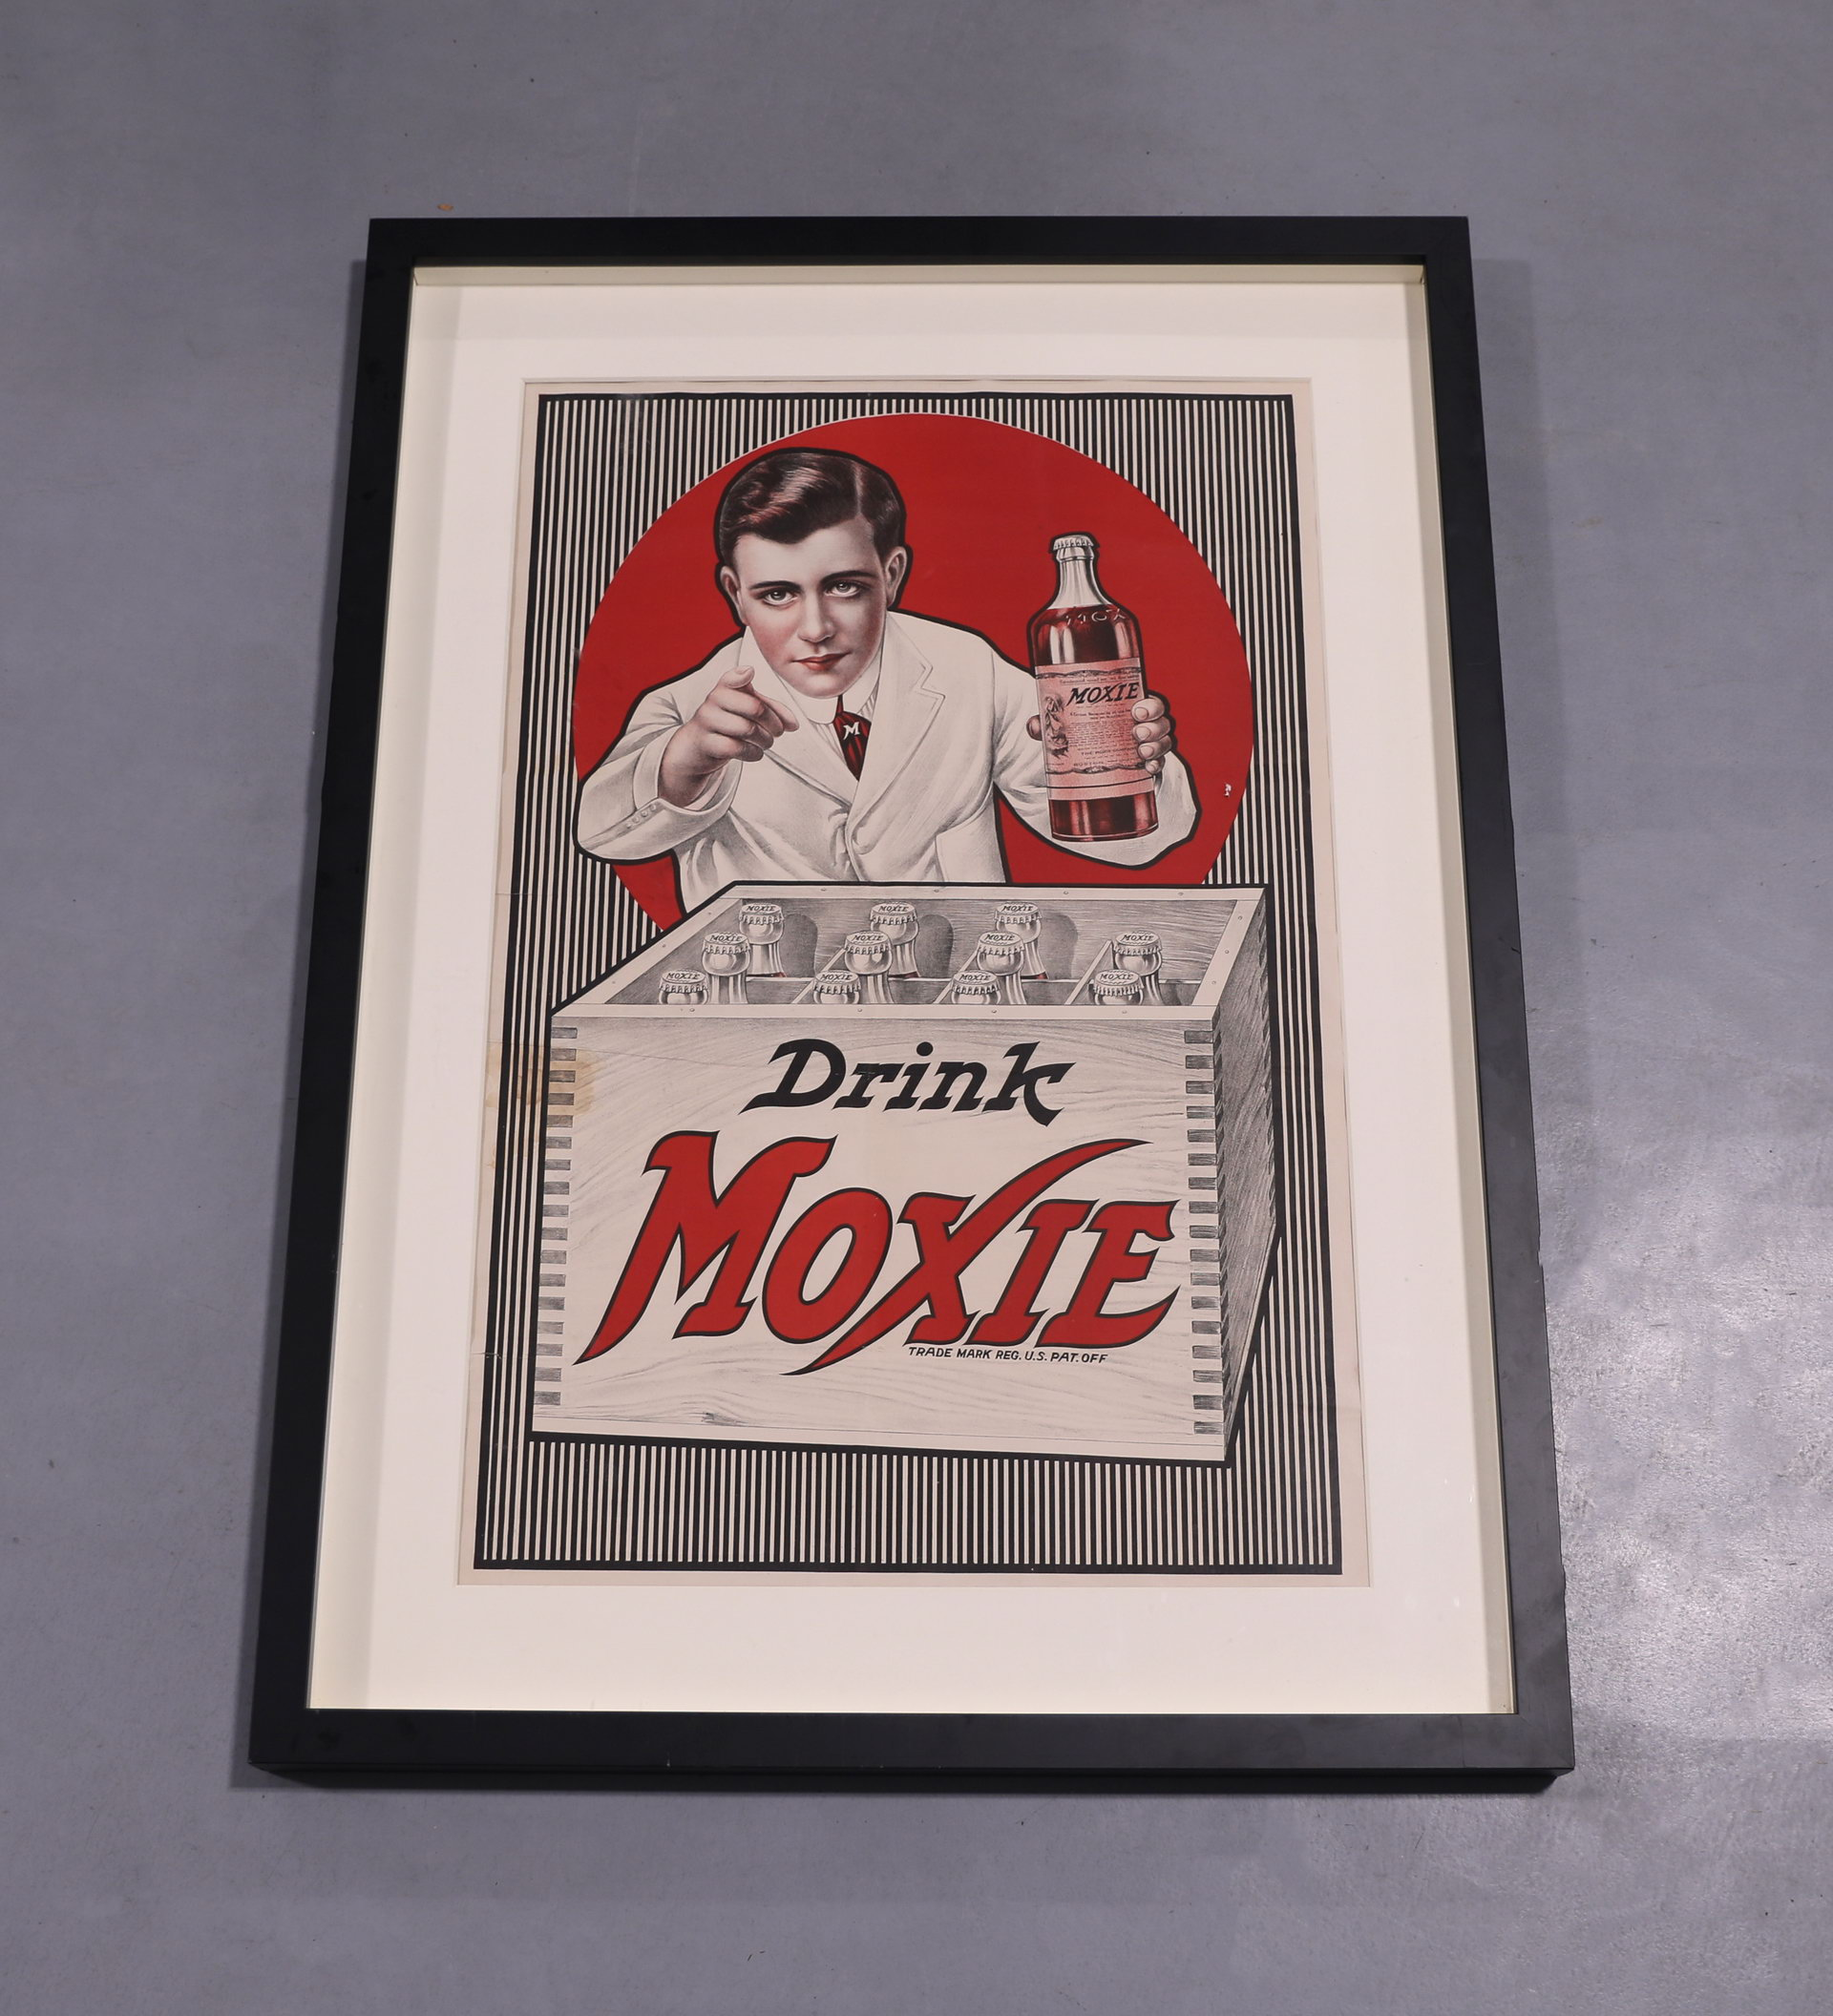 Large Early Drink Moxie Framed Poster Sign